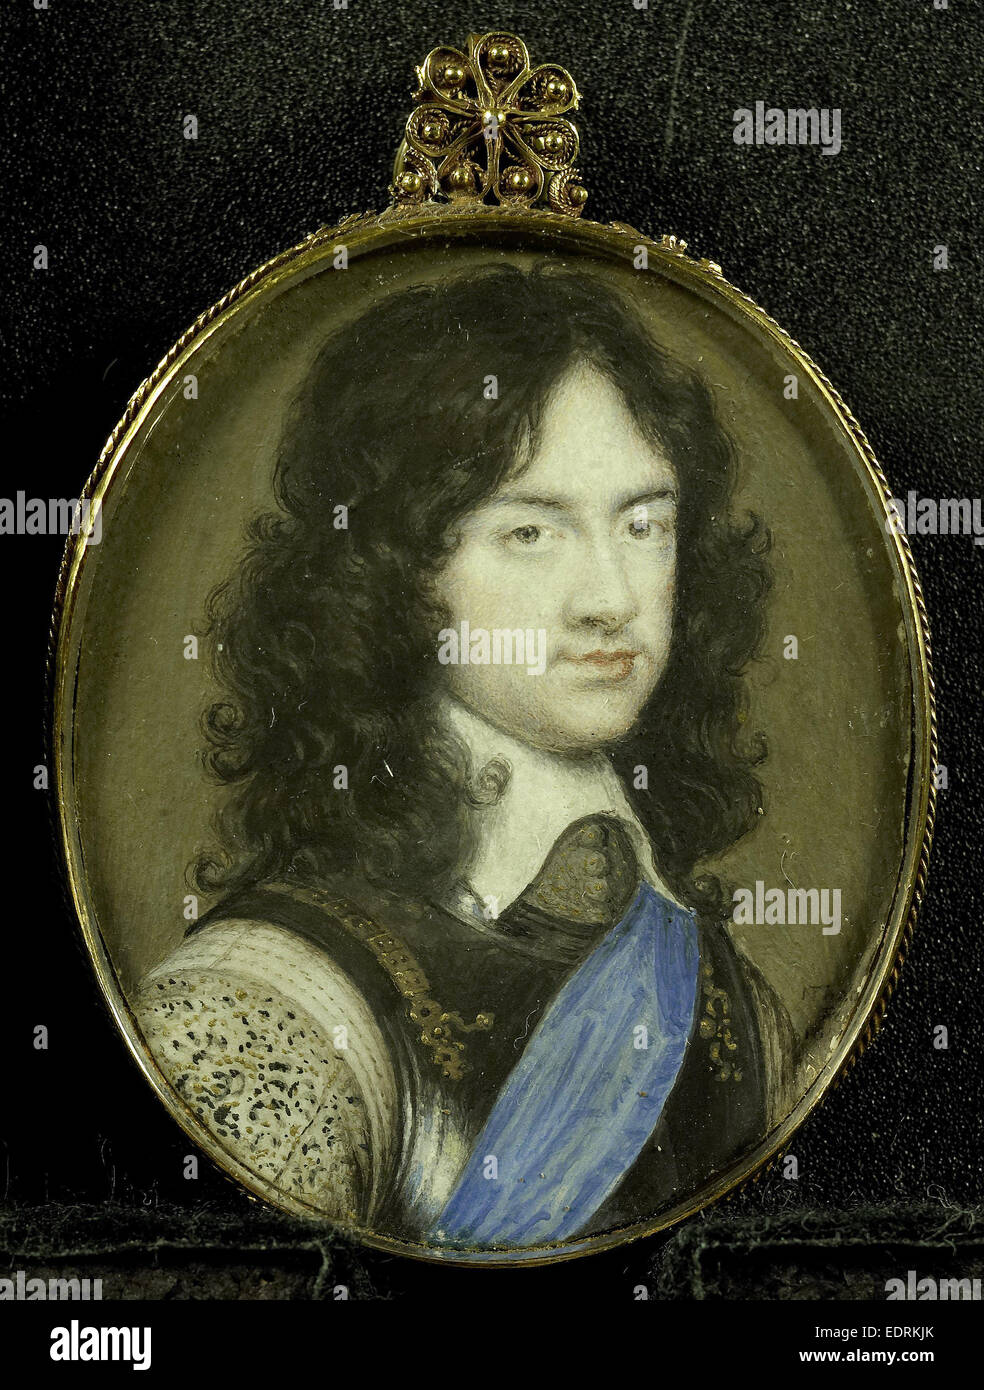 Karel Stuart, 1630-85, Prince of Wales. The later King Charles II of England, Nathaniel Thach, 1650 - 1659, Portrait - Stock Image